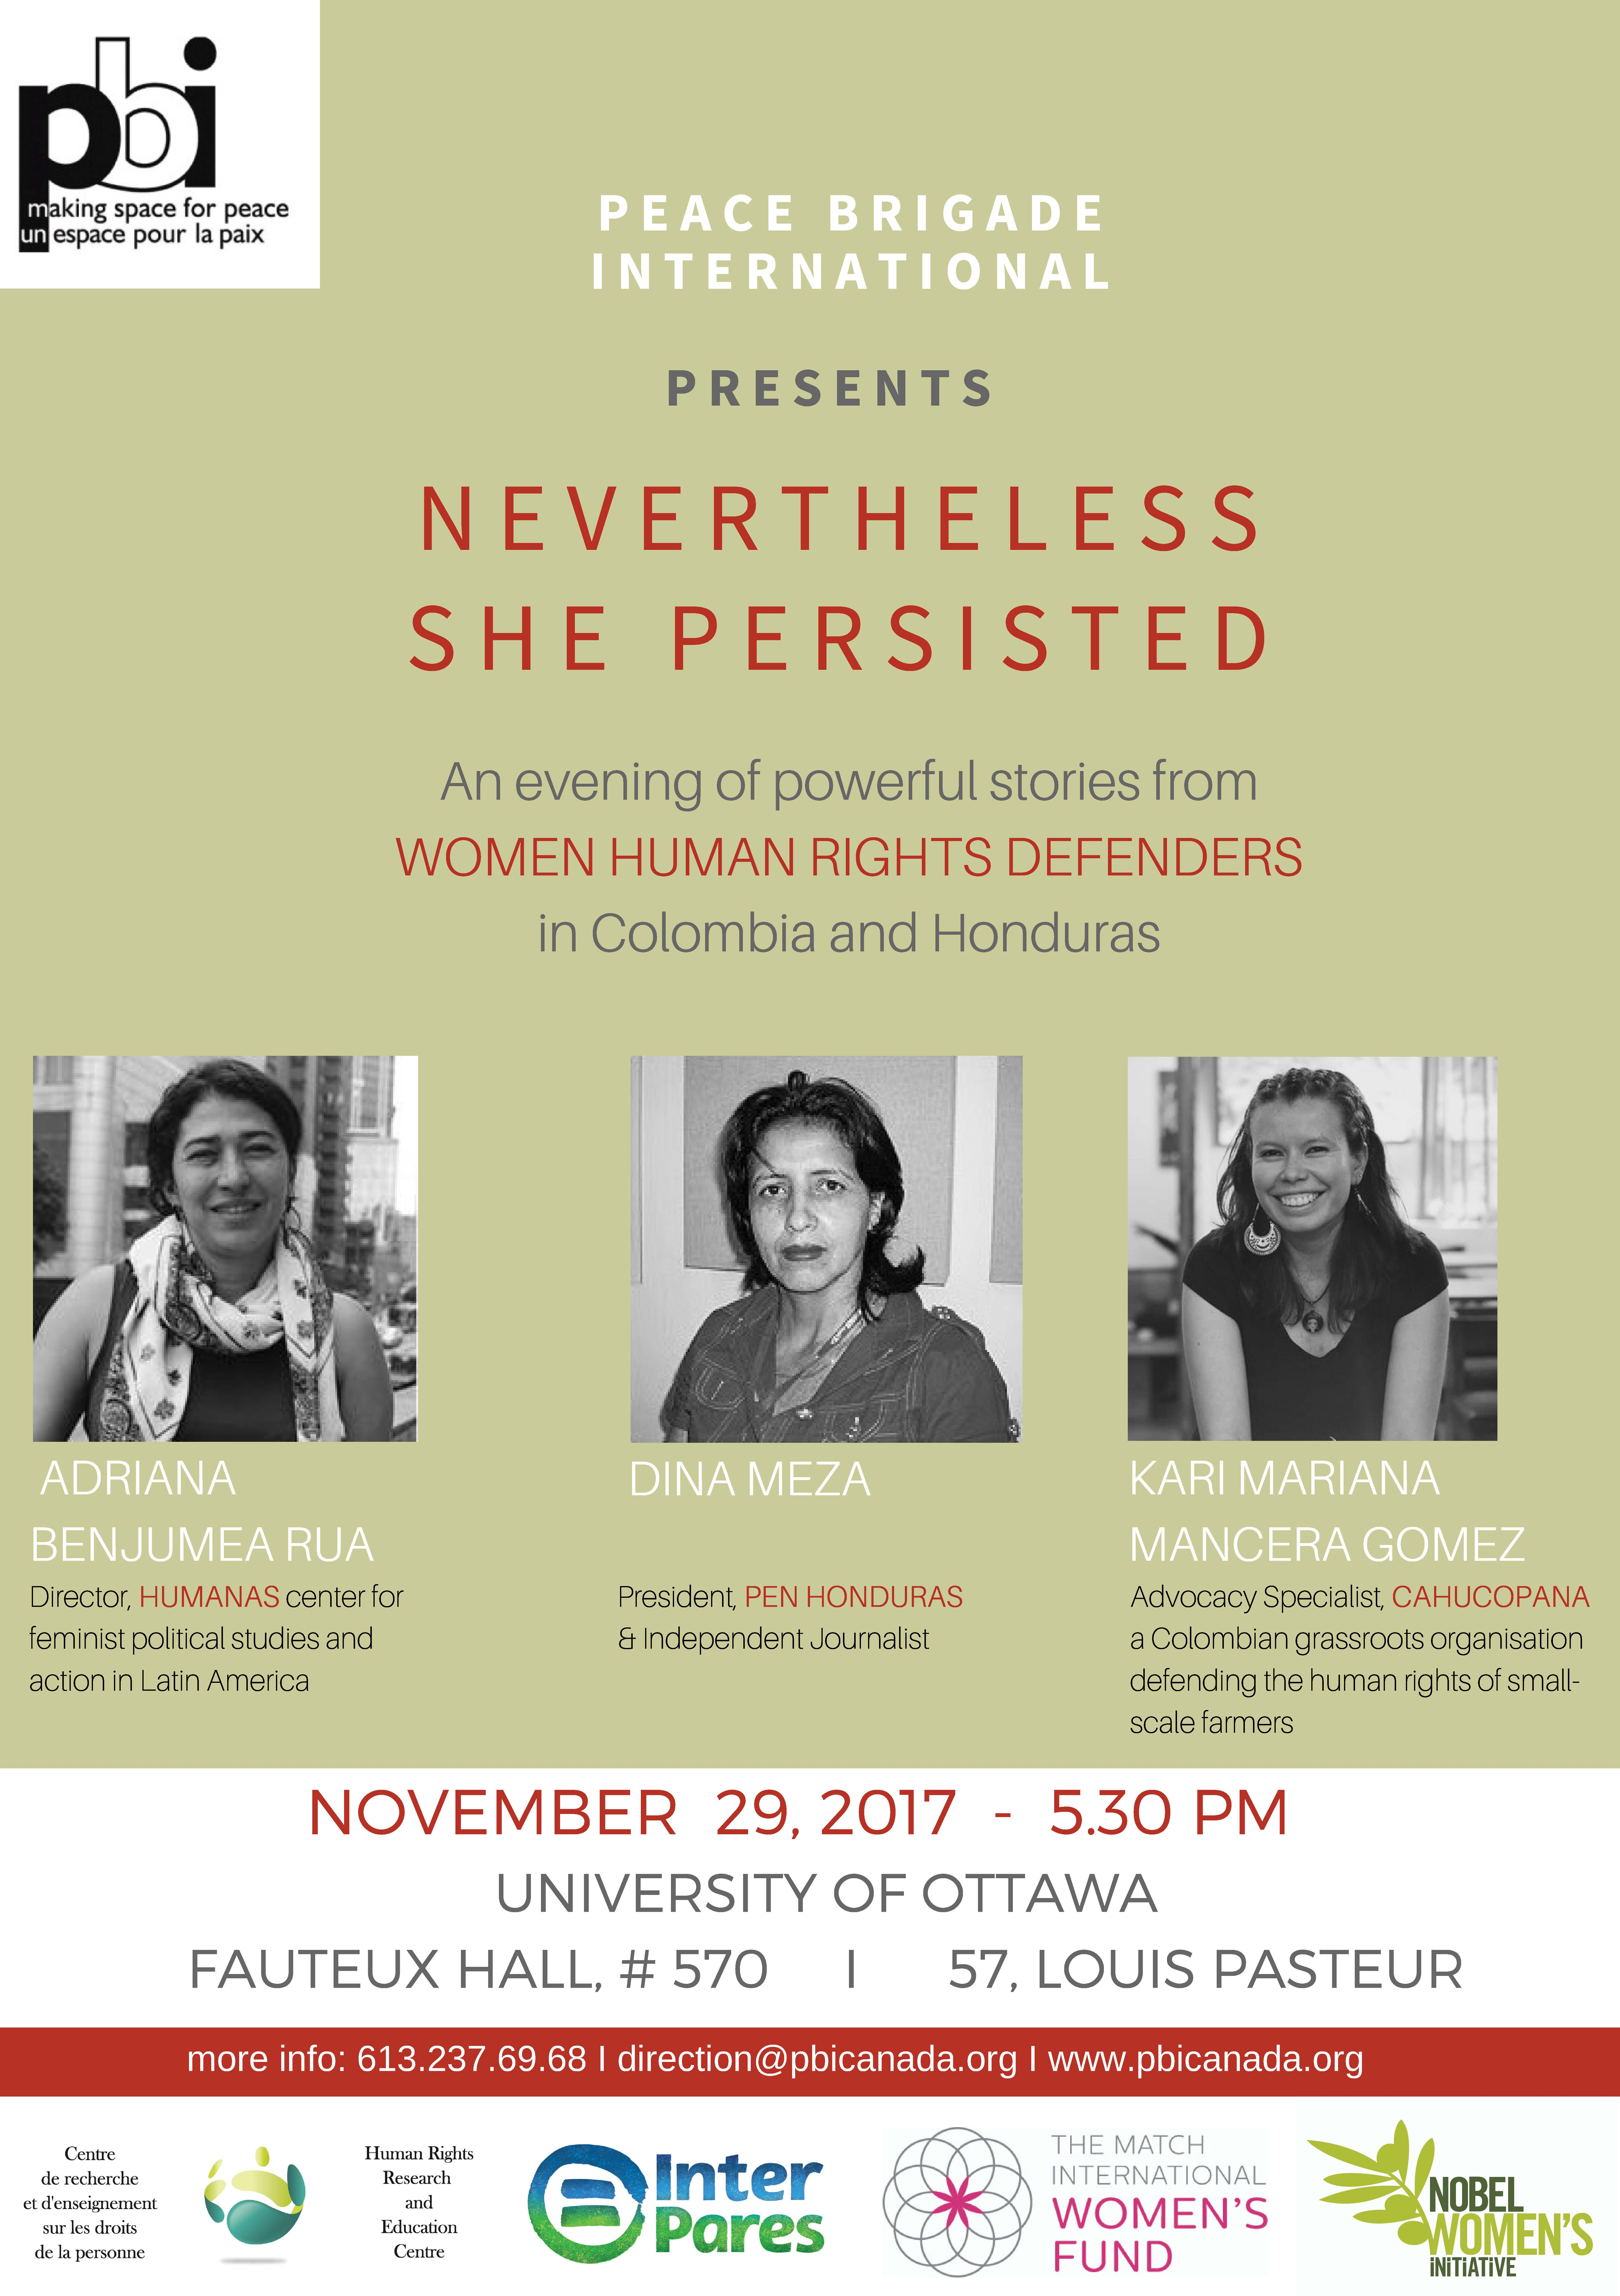 Women Human Rights Defenders - Event on November 29